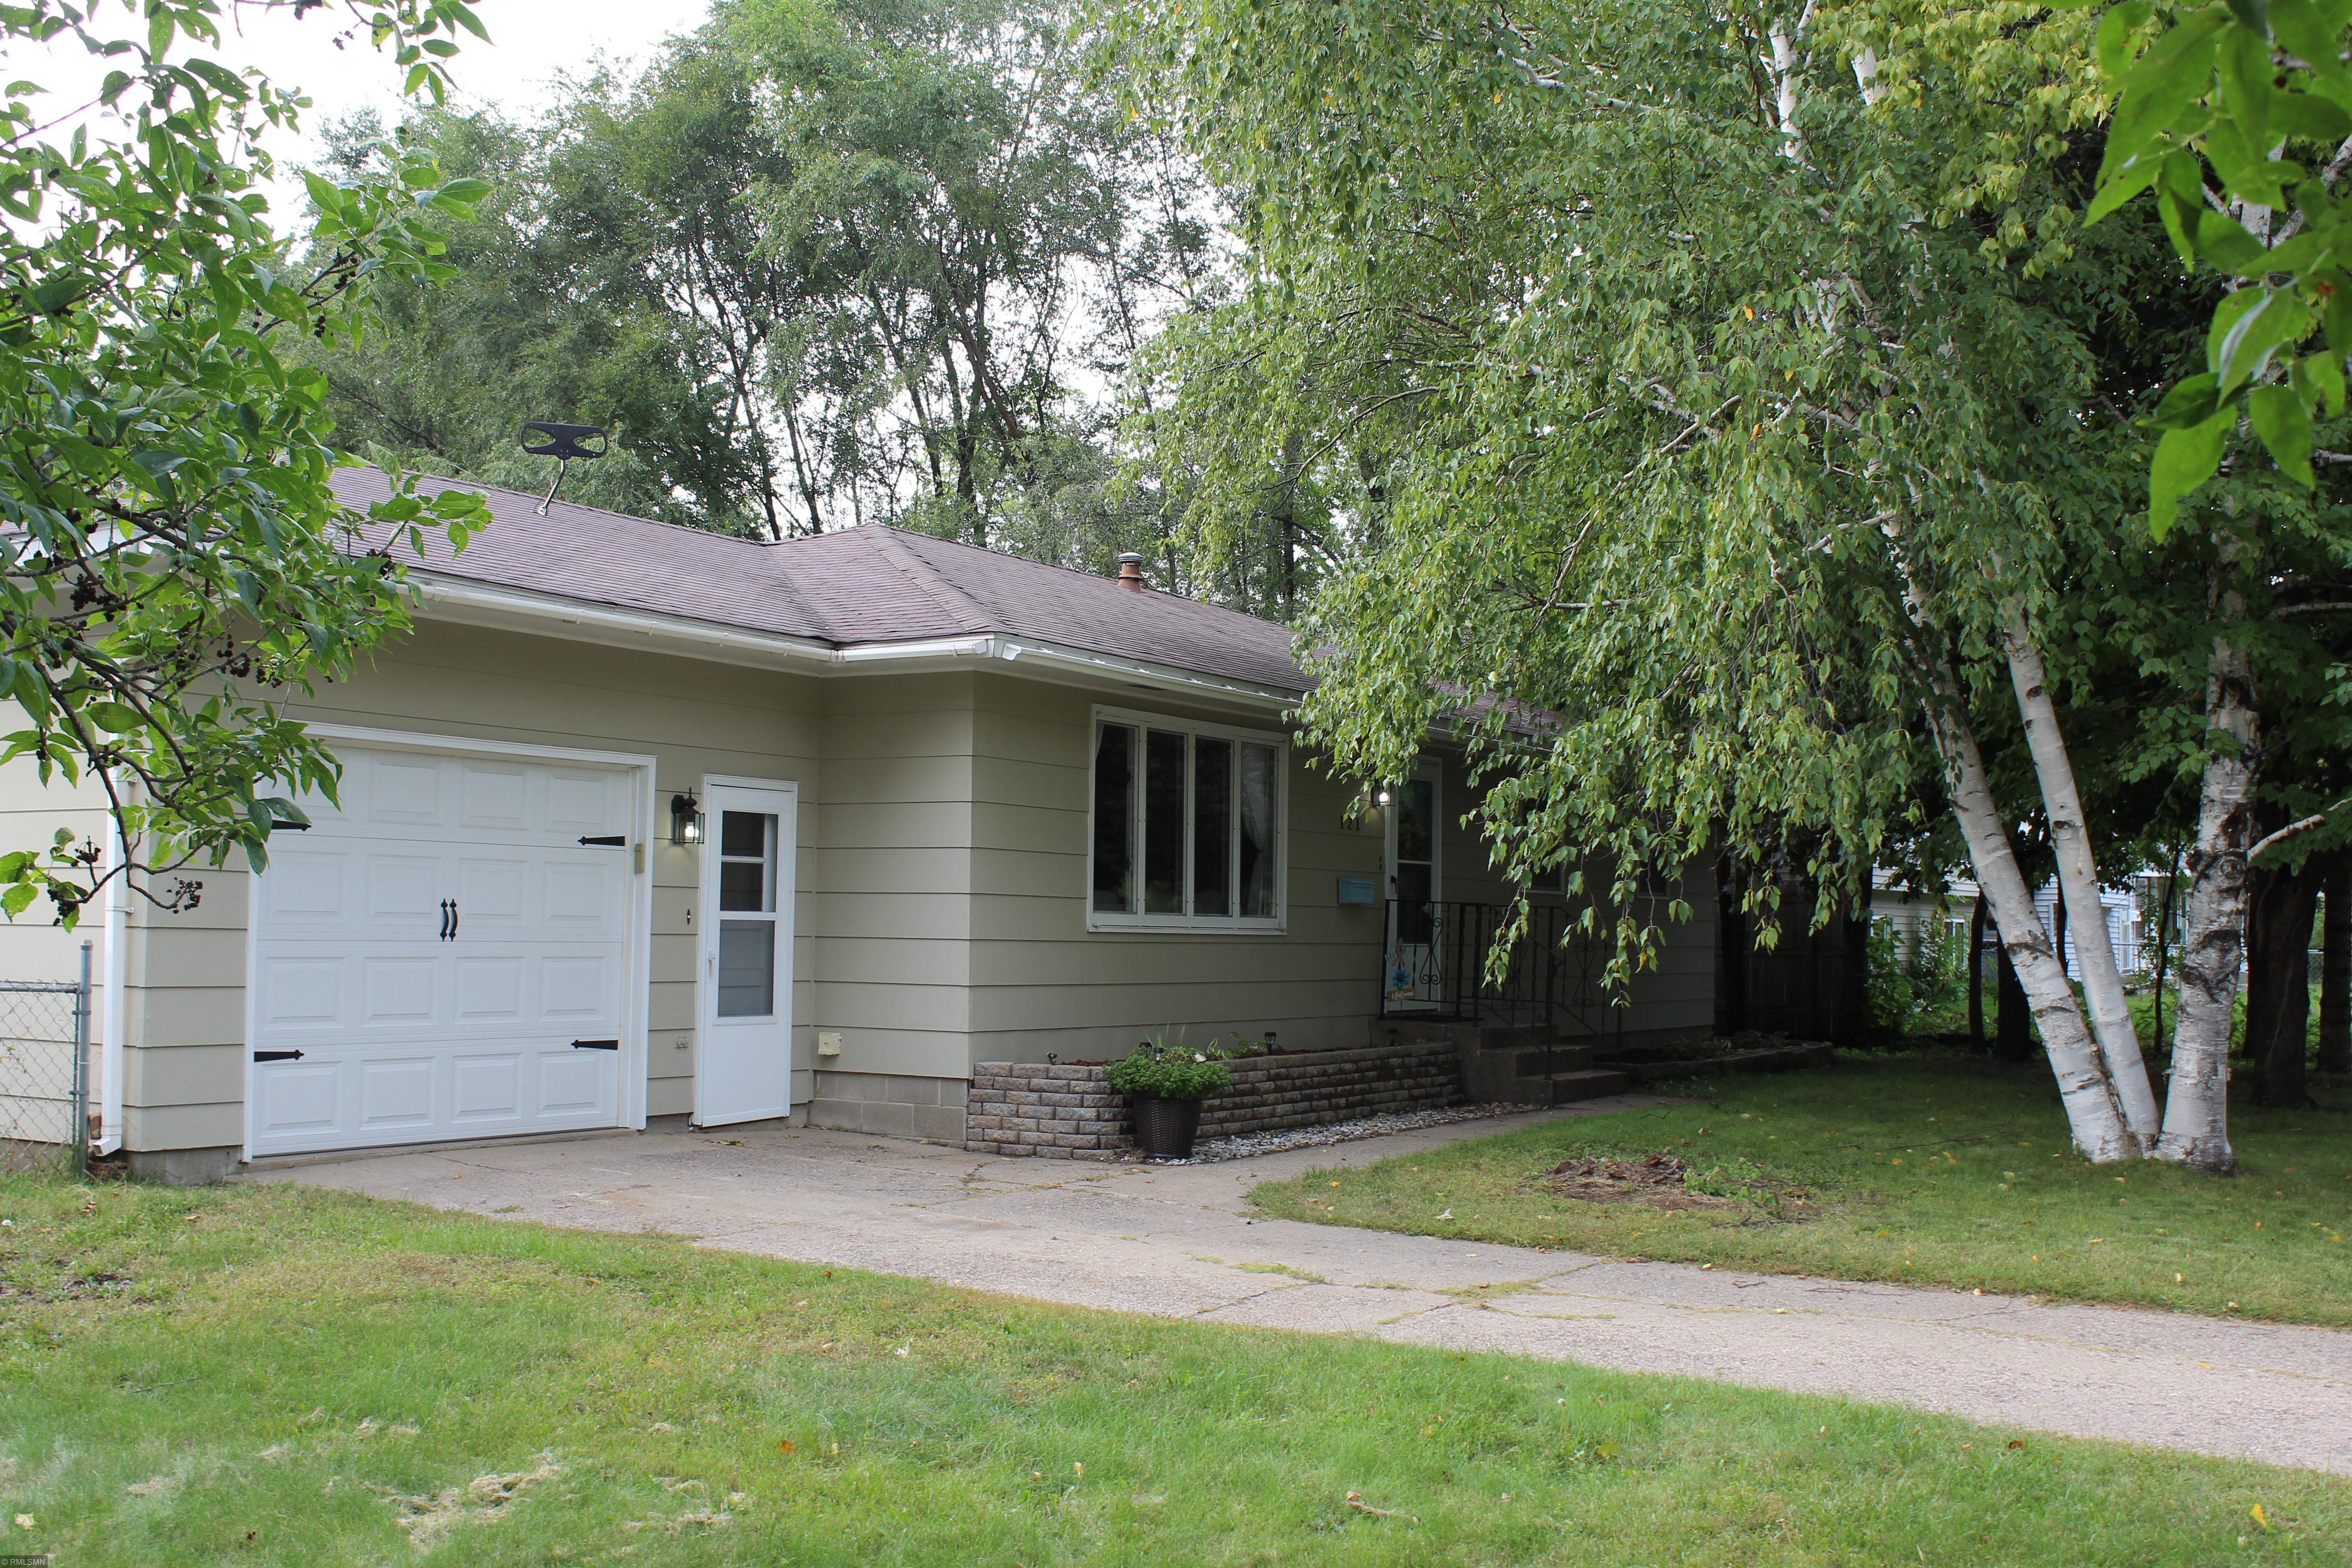 You will feel right at home in this rambler with 3 bedrooms all on the main floor. New paint. Open floor plan, Beautiful fenced back yard, patio area, with a potential 4th Br or office in the basement with the addition of an egress window. Welcome Home!